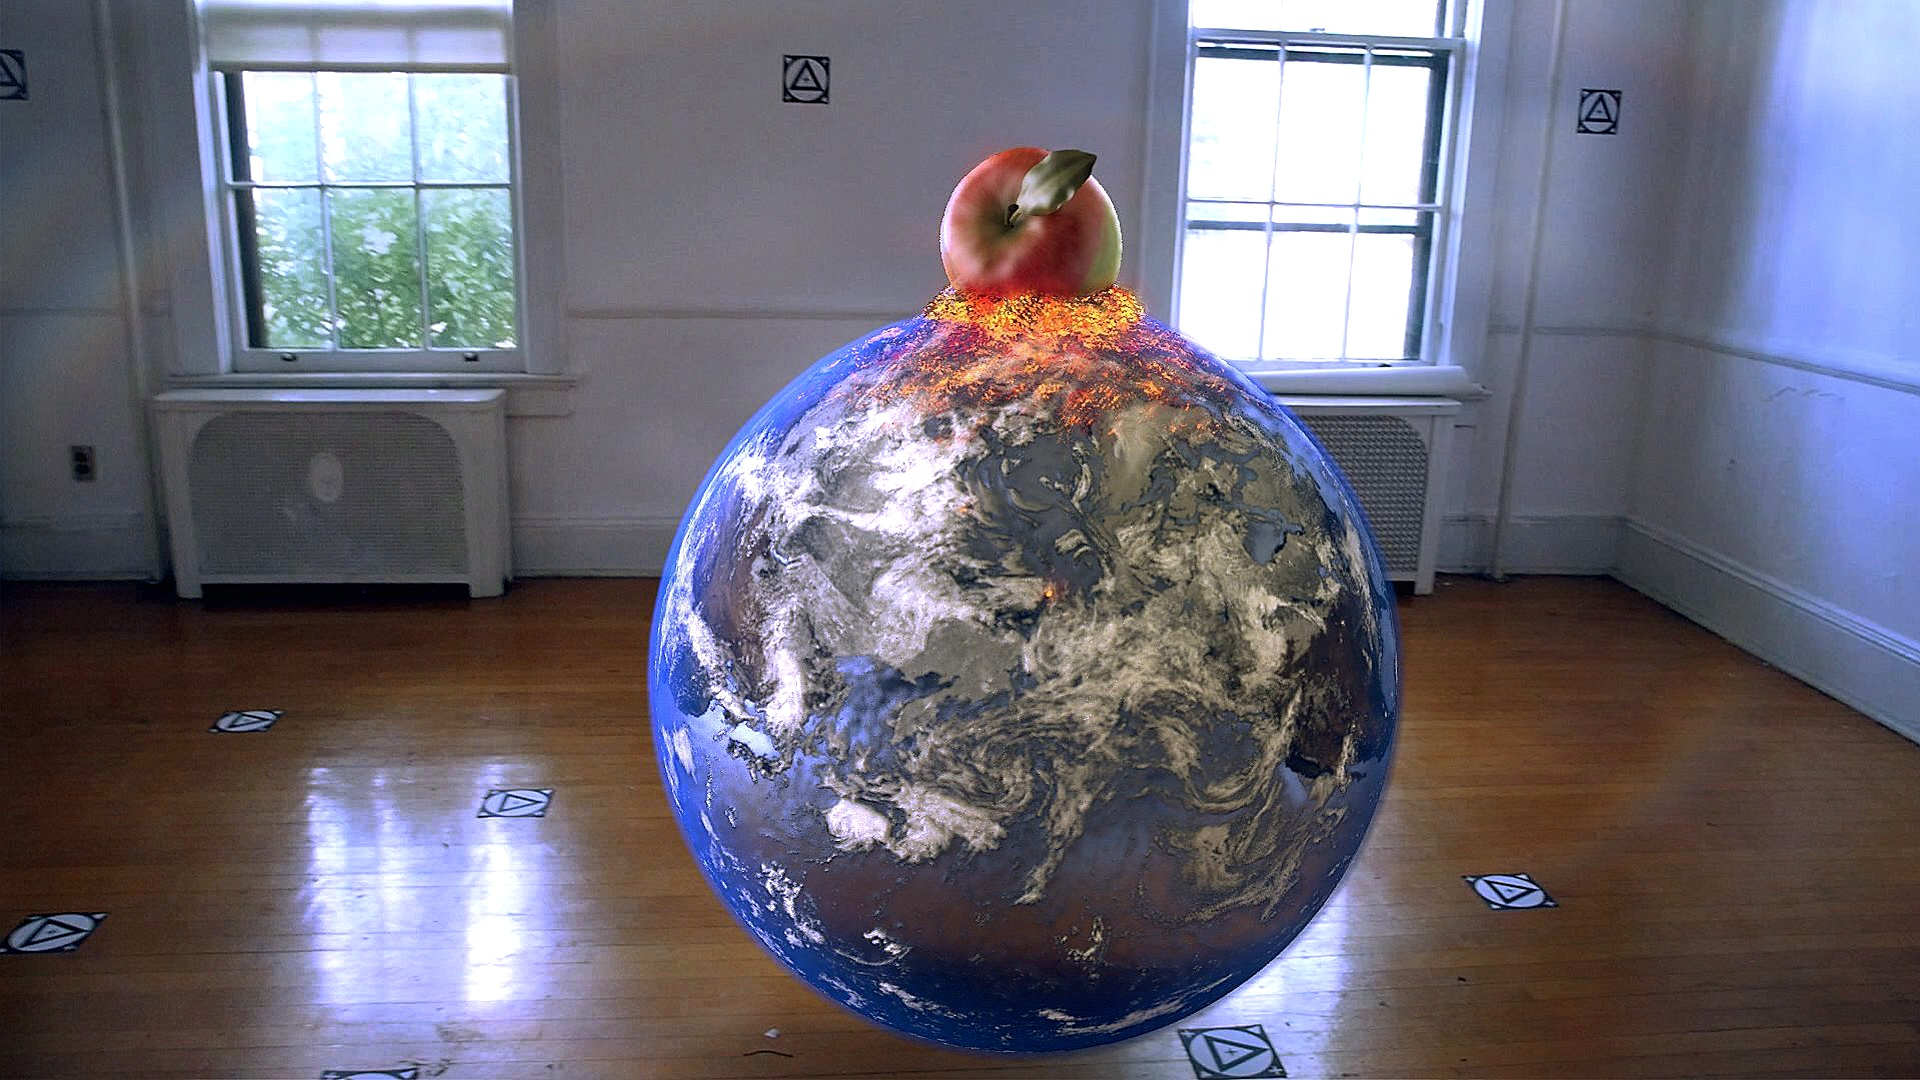 Island_Physics_Exhibition__New_York_-_Apple_Fall_-_cap01131